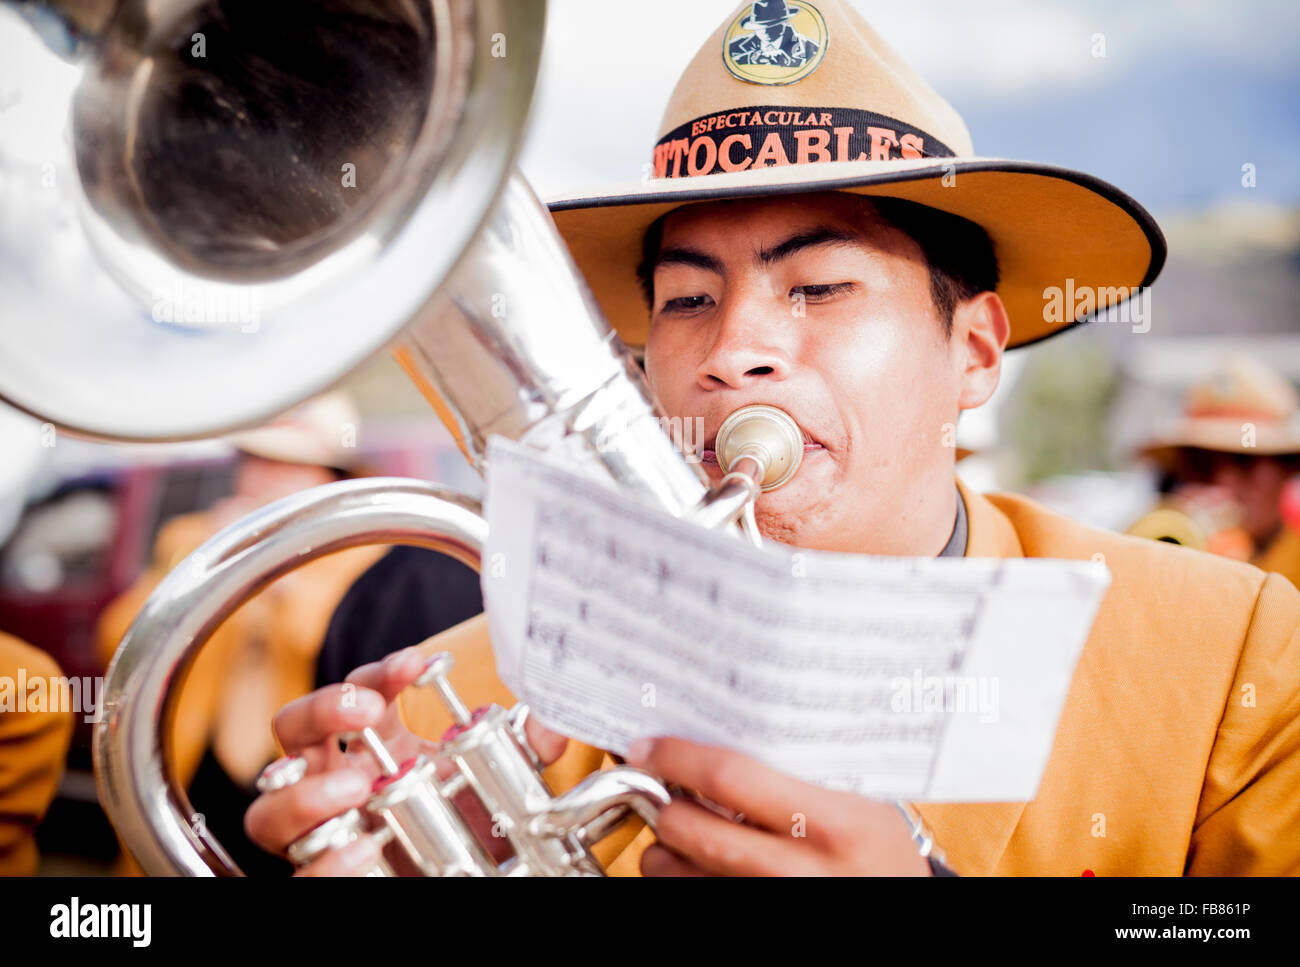 Musician on parade during a fiesta in San Pedro, La Paz province, Bolivia. - Stock Image